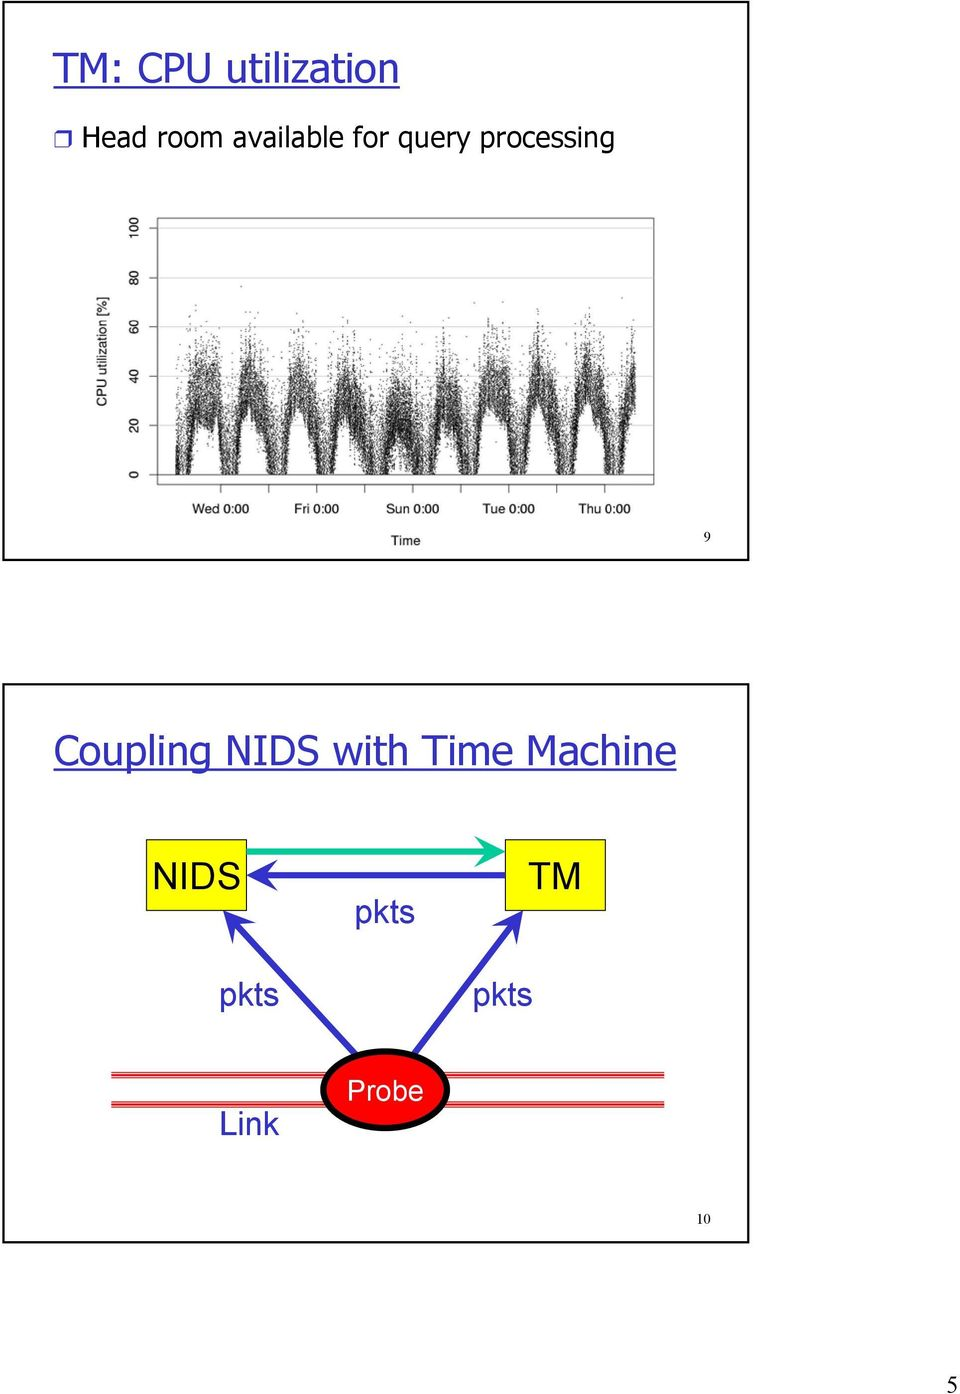 Coupling NIDS with Time Machine